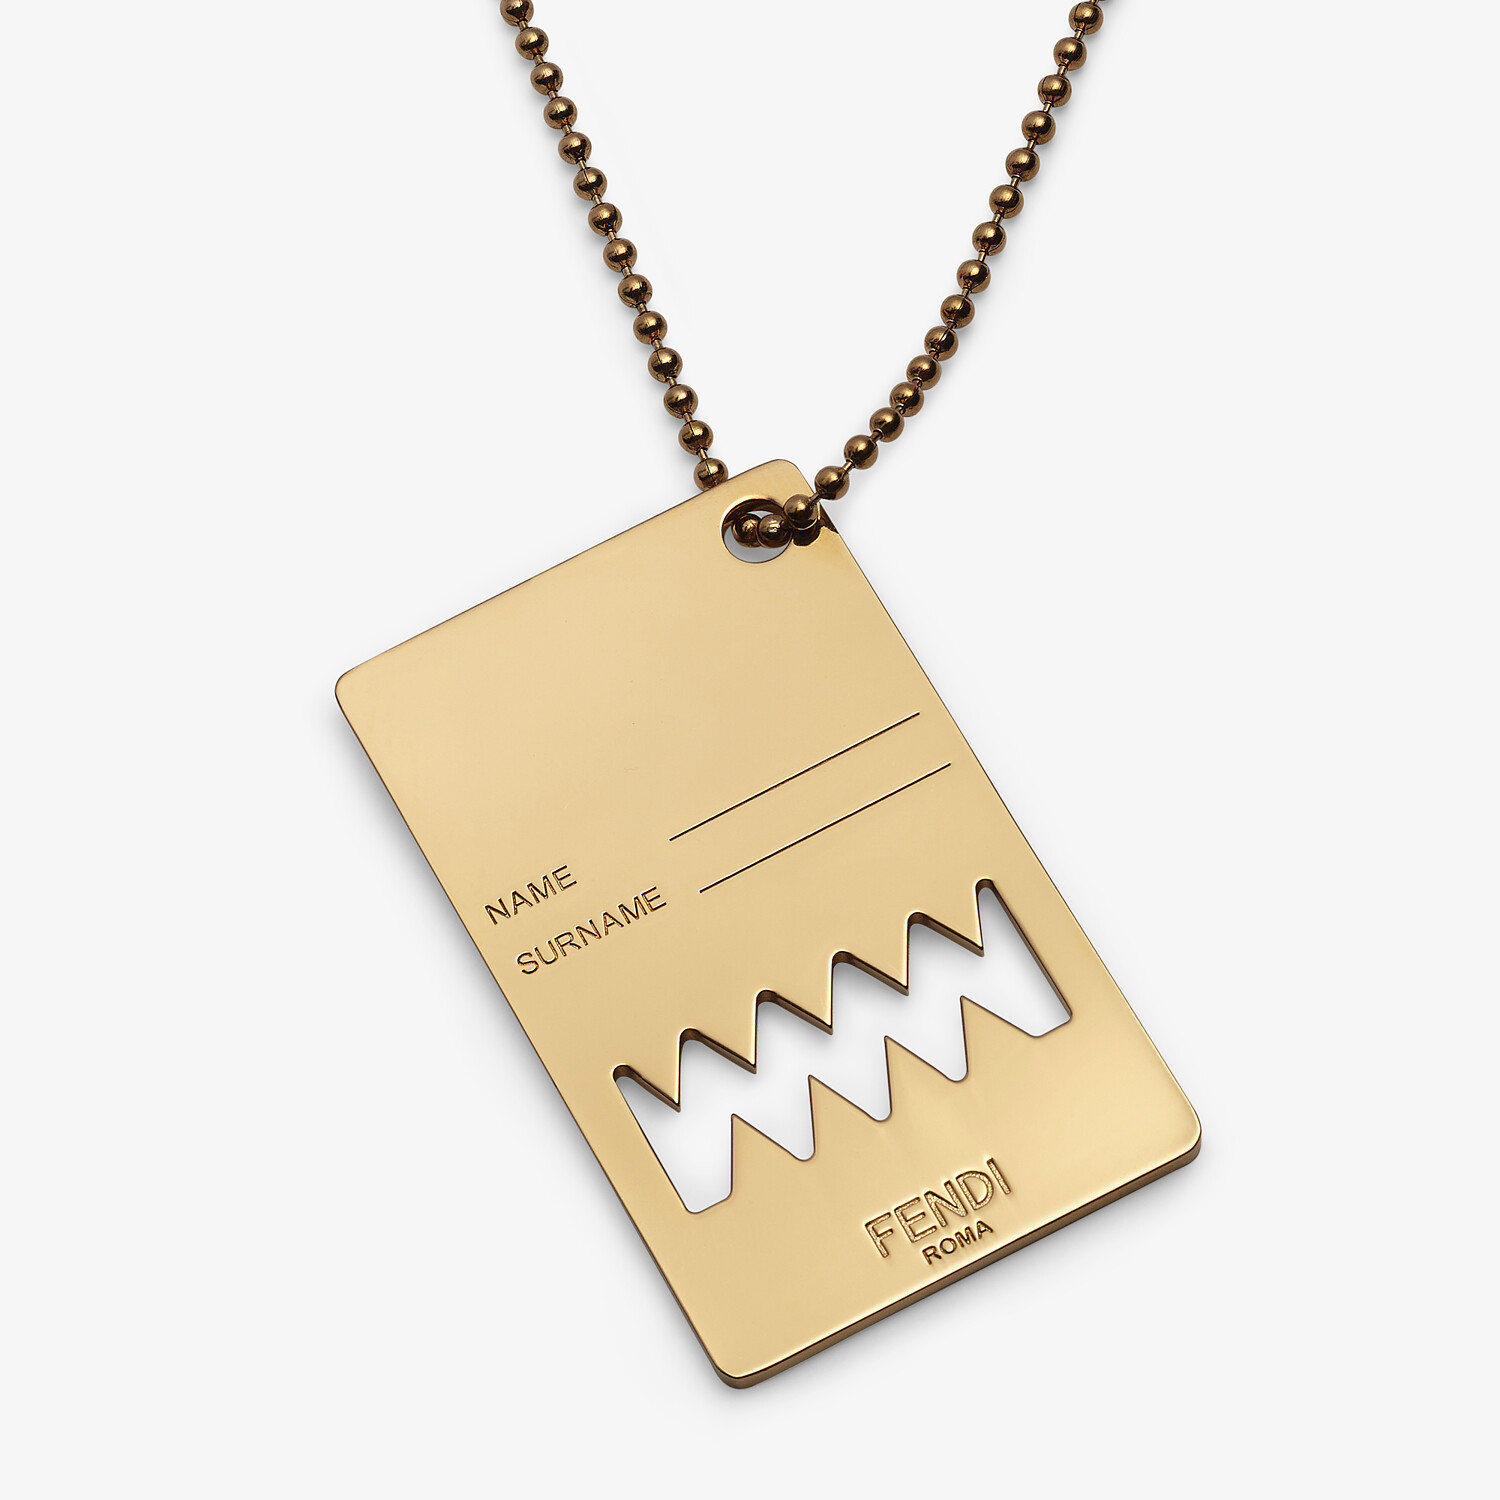 FENDI NECKLACE - Gold-colored necklace - view 2 detail